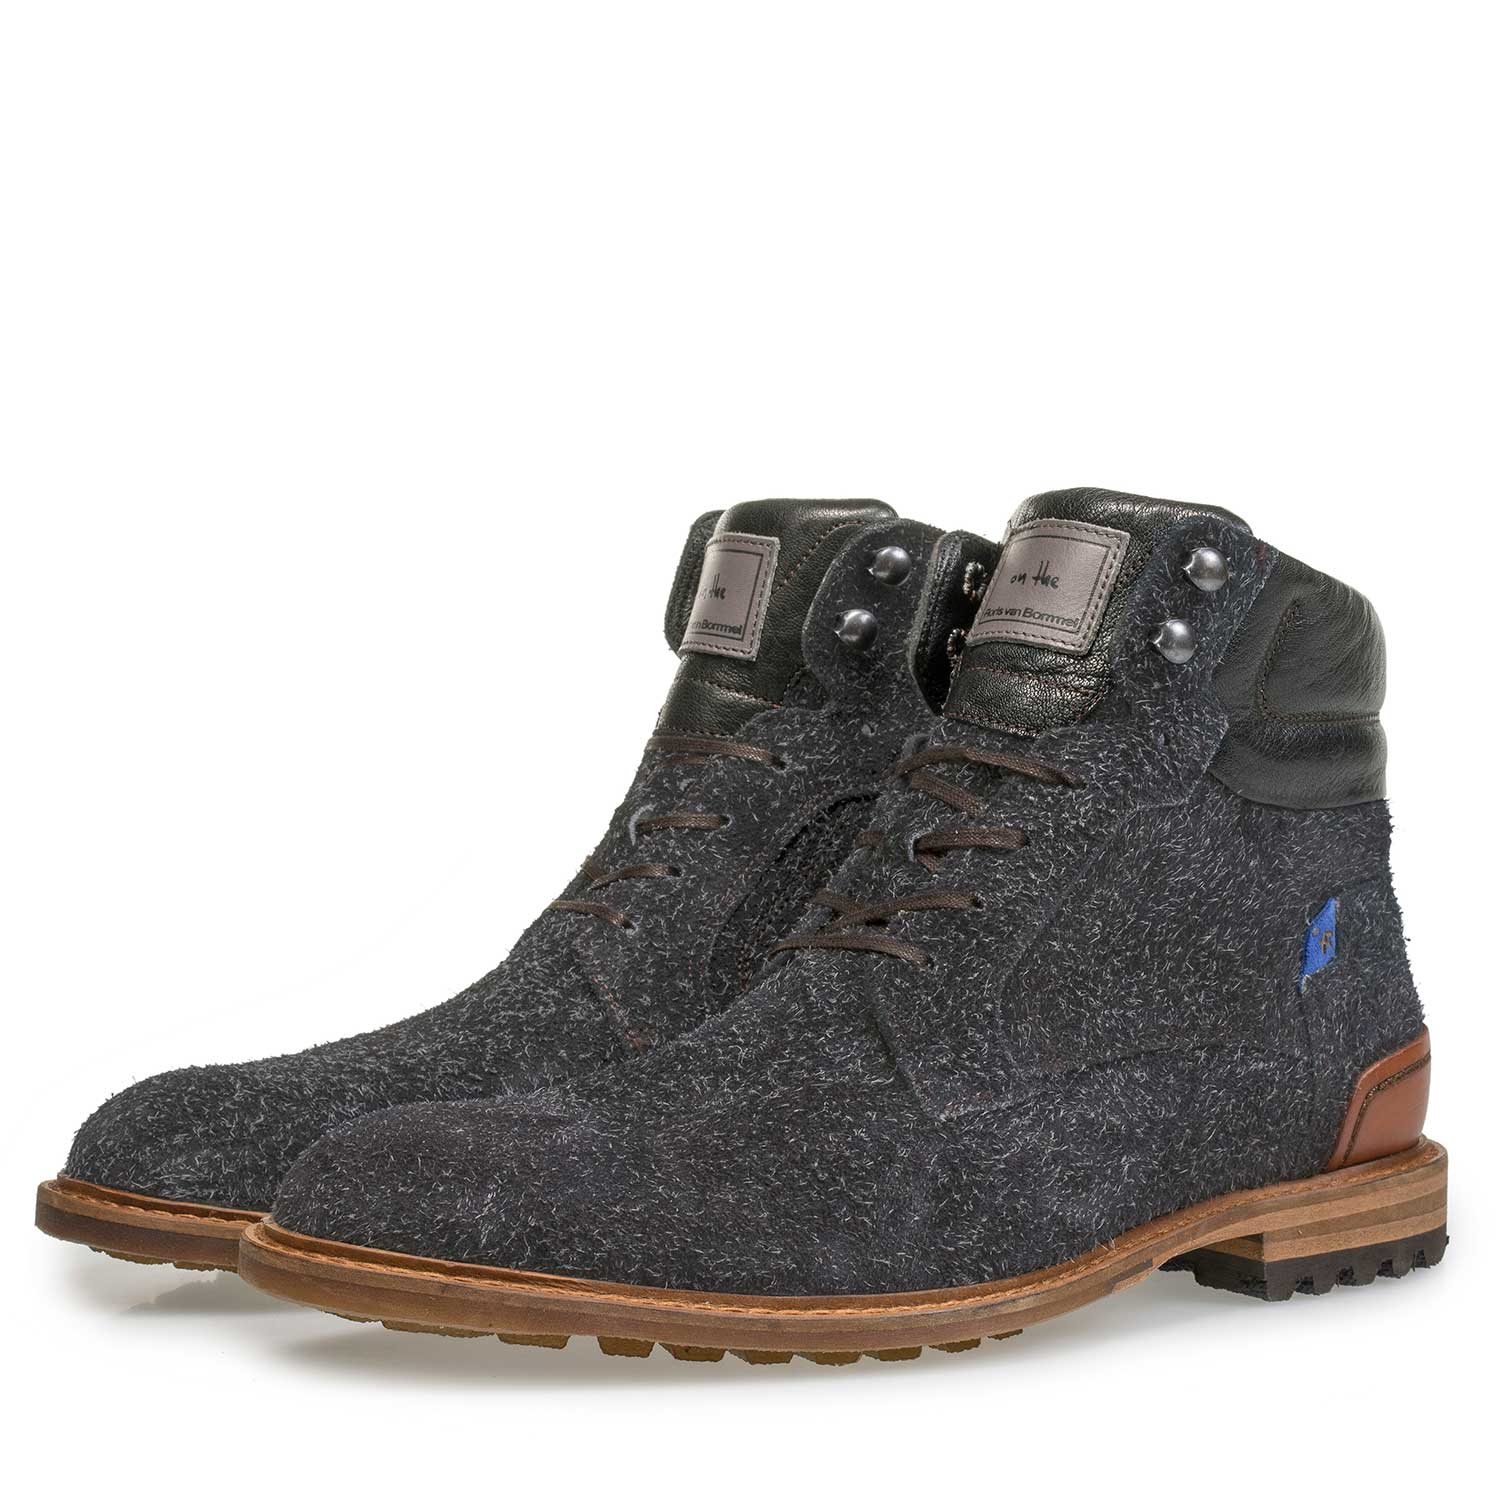 10234/14 - Dark grey rough-leather lace boot